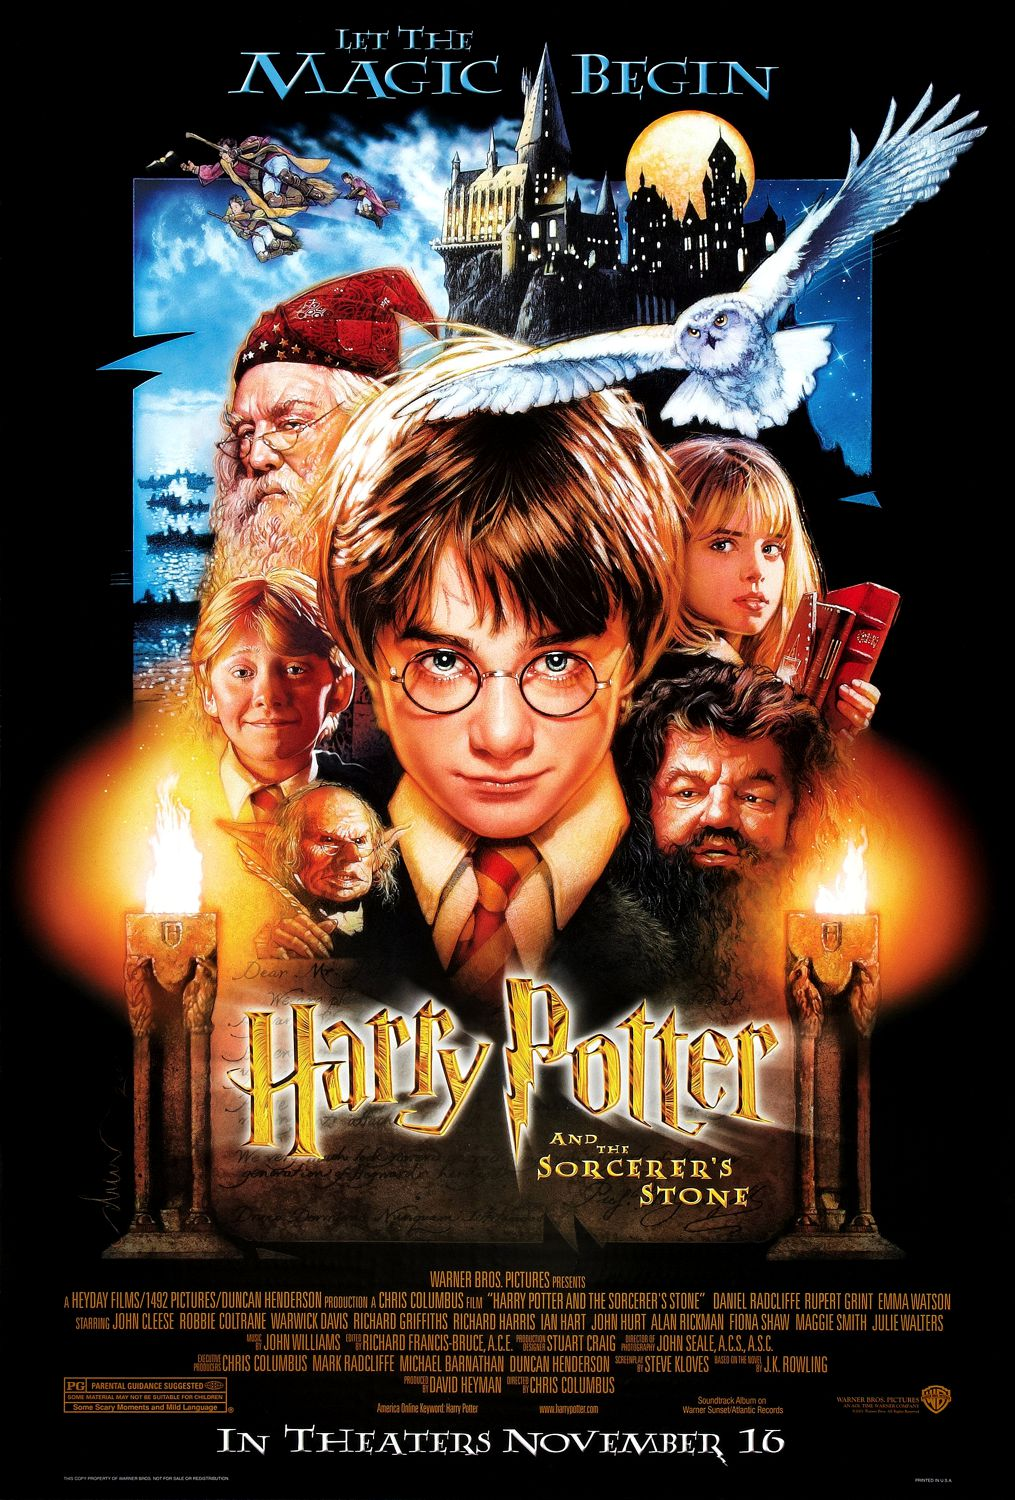 essay on harry potter and the sorcerer stone Harry potter and the sorcerer's stone essay sample this book report is on the book harry potter and the sorcerer's stone, by jk rowling i would highly recommend this book to any reader, of any age.